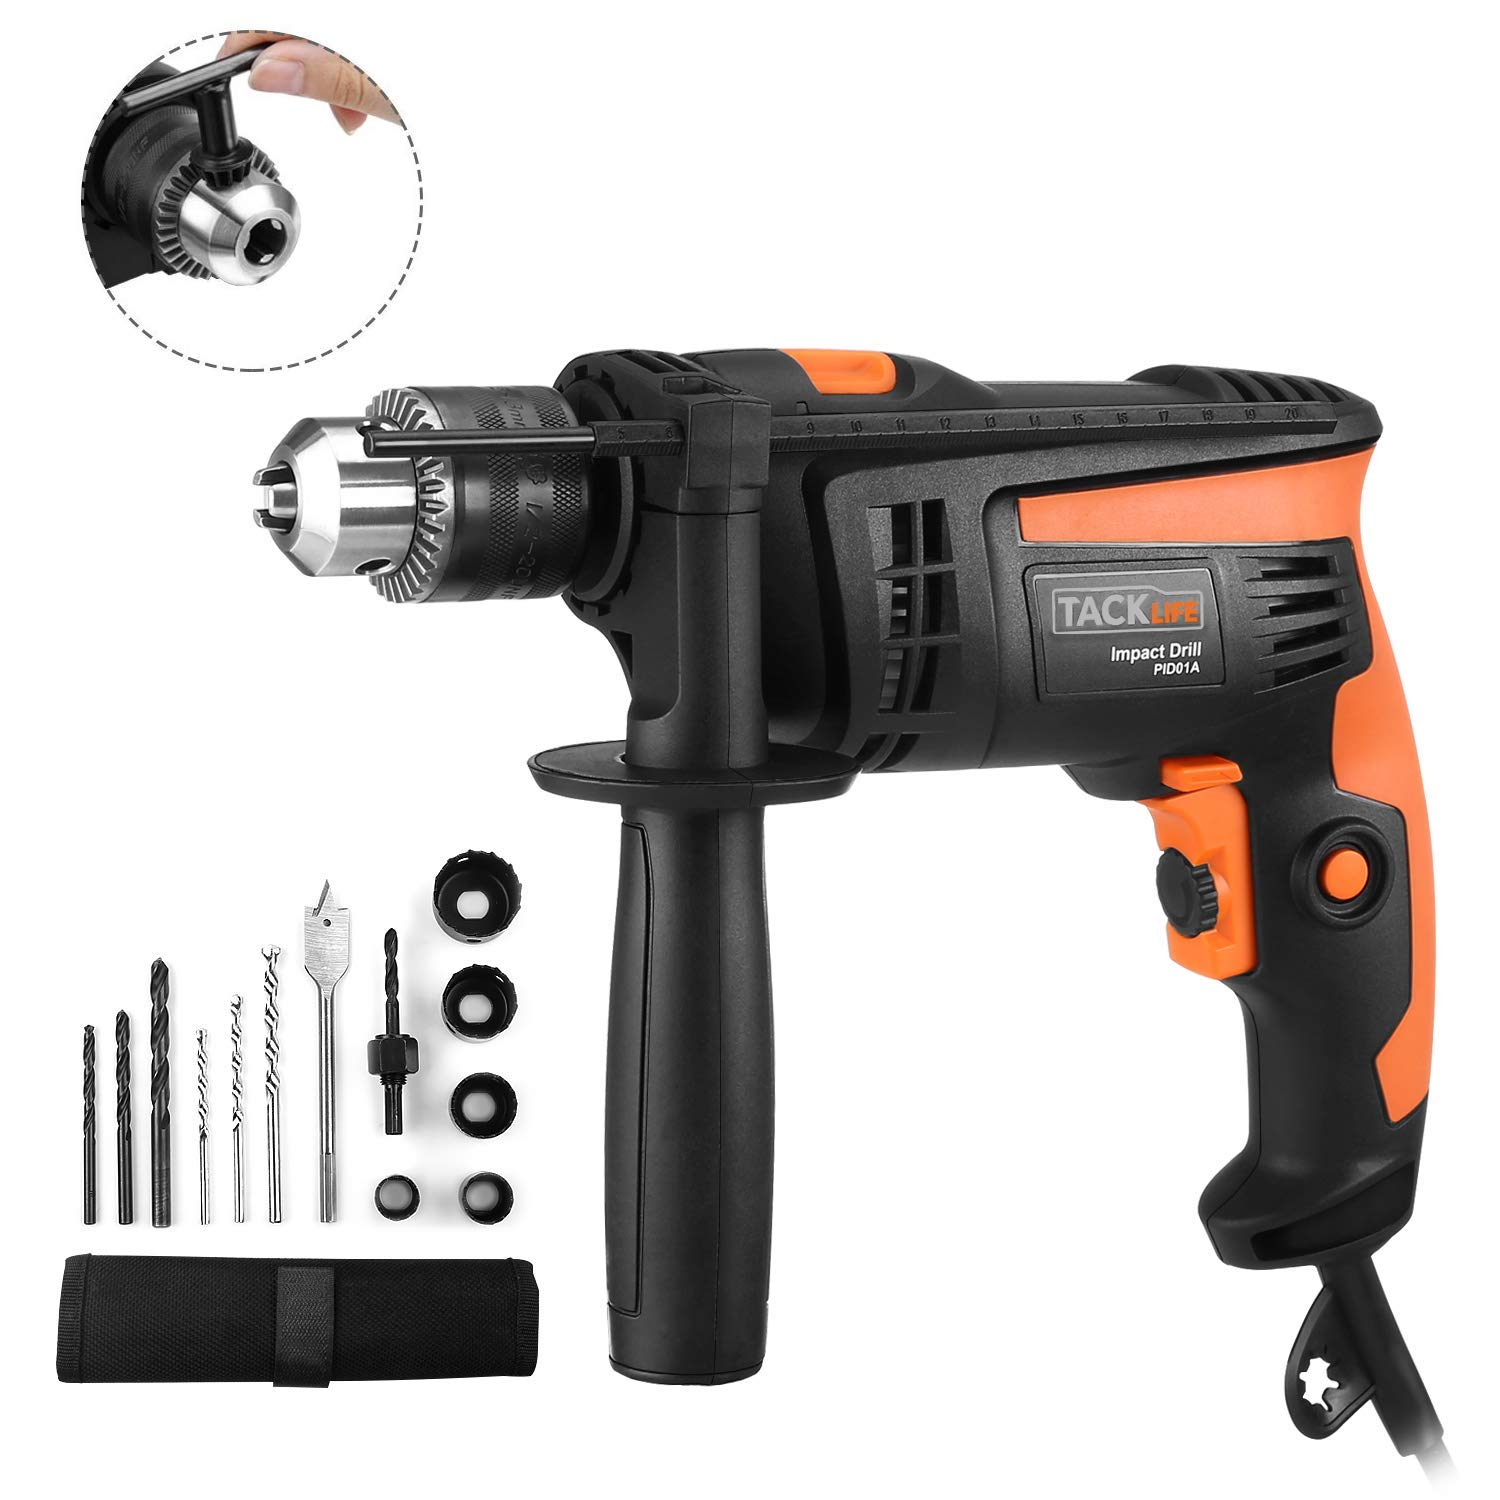 Hammer Drill, TACKLIFE 1 2-Inch Electric Drill, 12 Drill Bit Set, 2800 RPM, Variable-speed Trigger, 360 Rotating Handle, For Brick, Wood, Steel, Masonry – PID01A